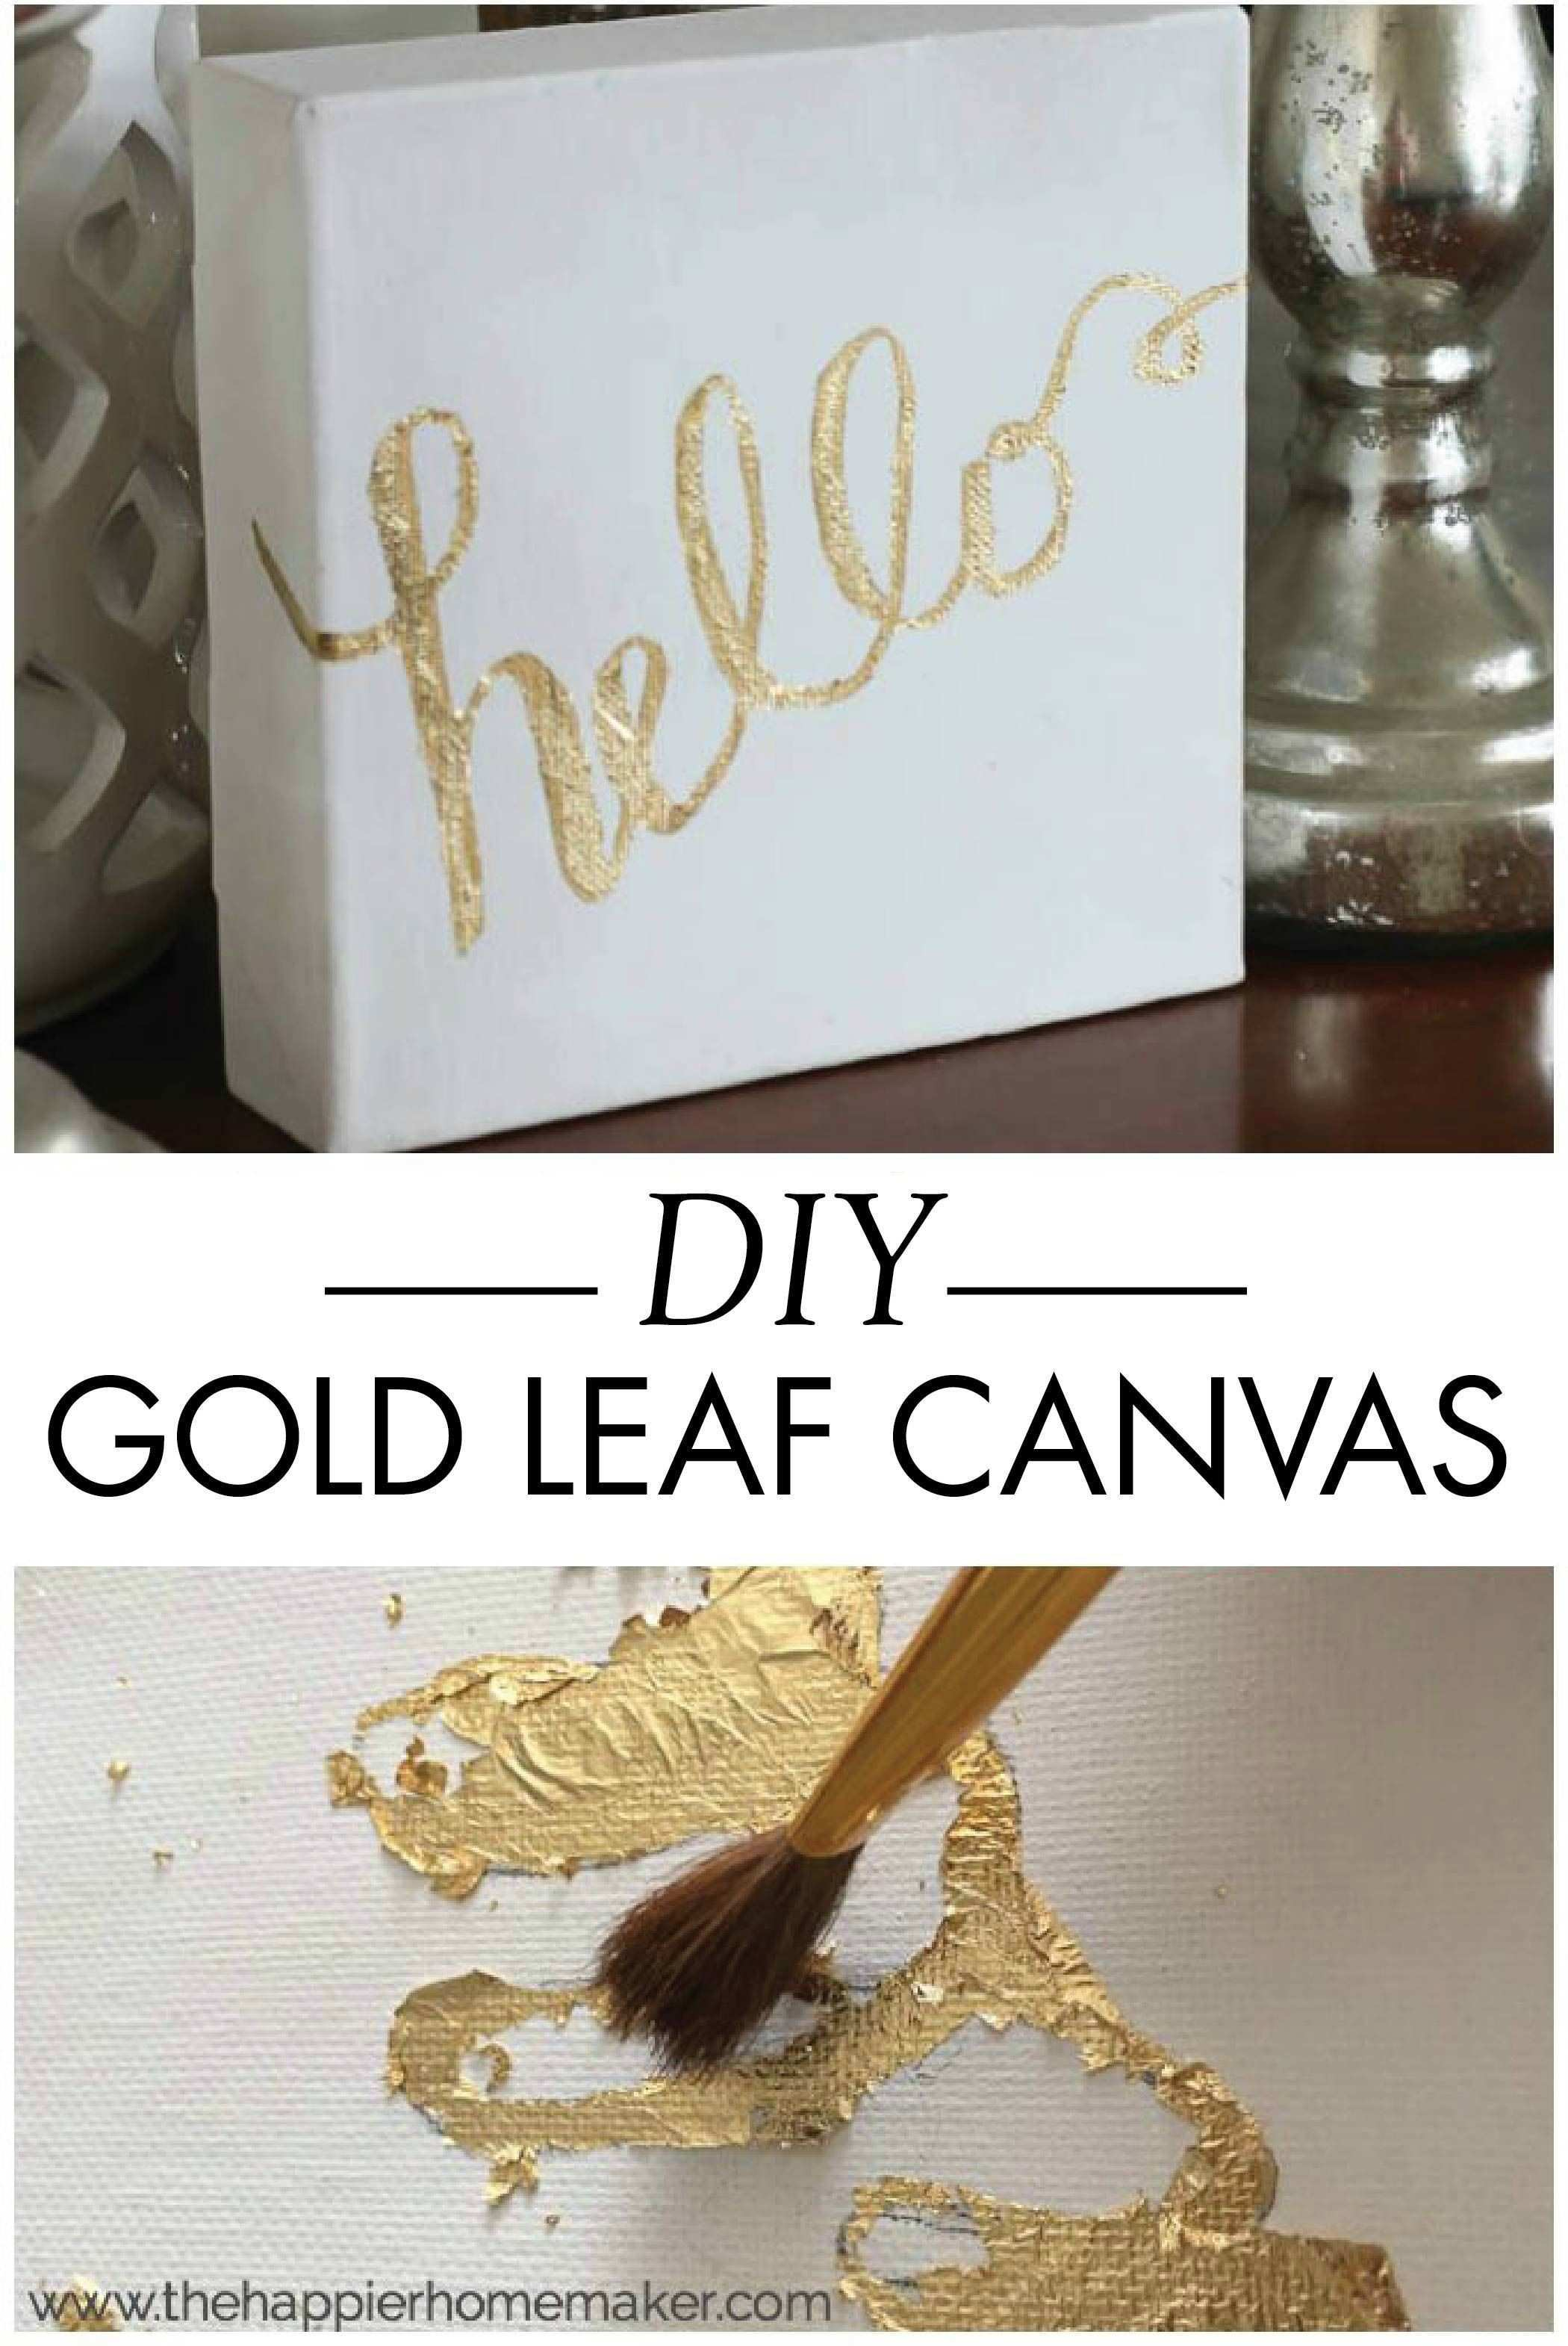 This DIY gold leaf canvas tutorial will teach you how to easily